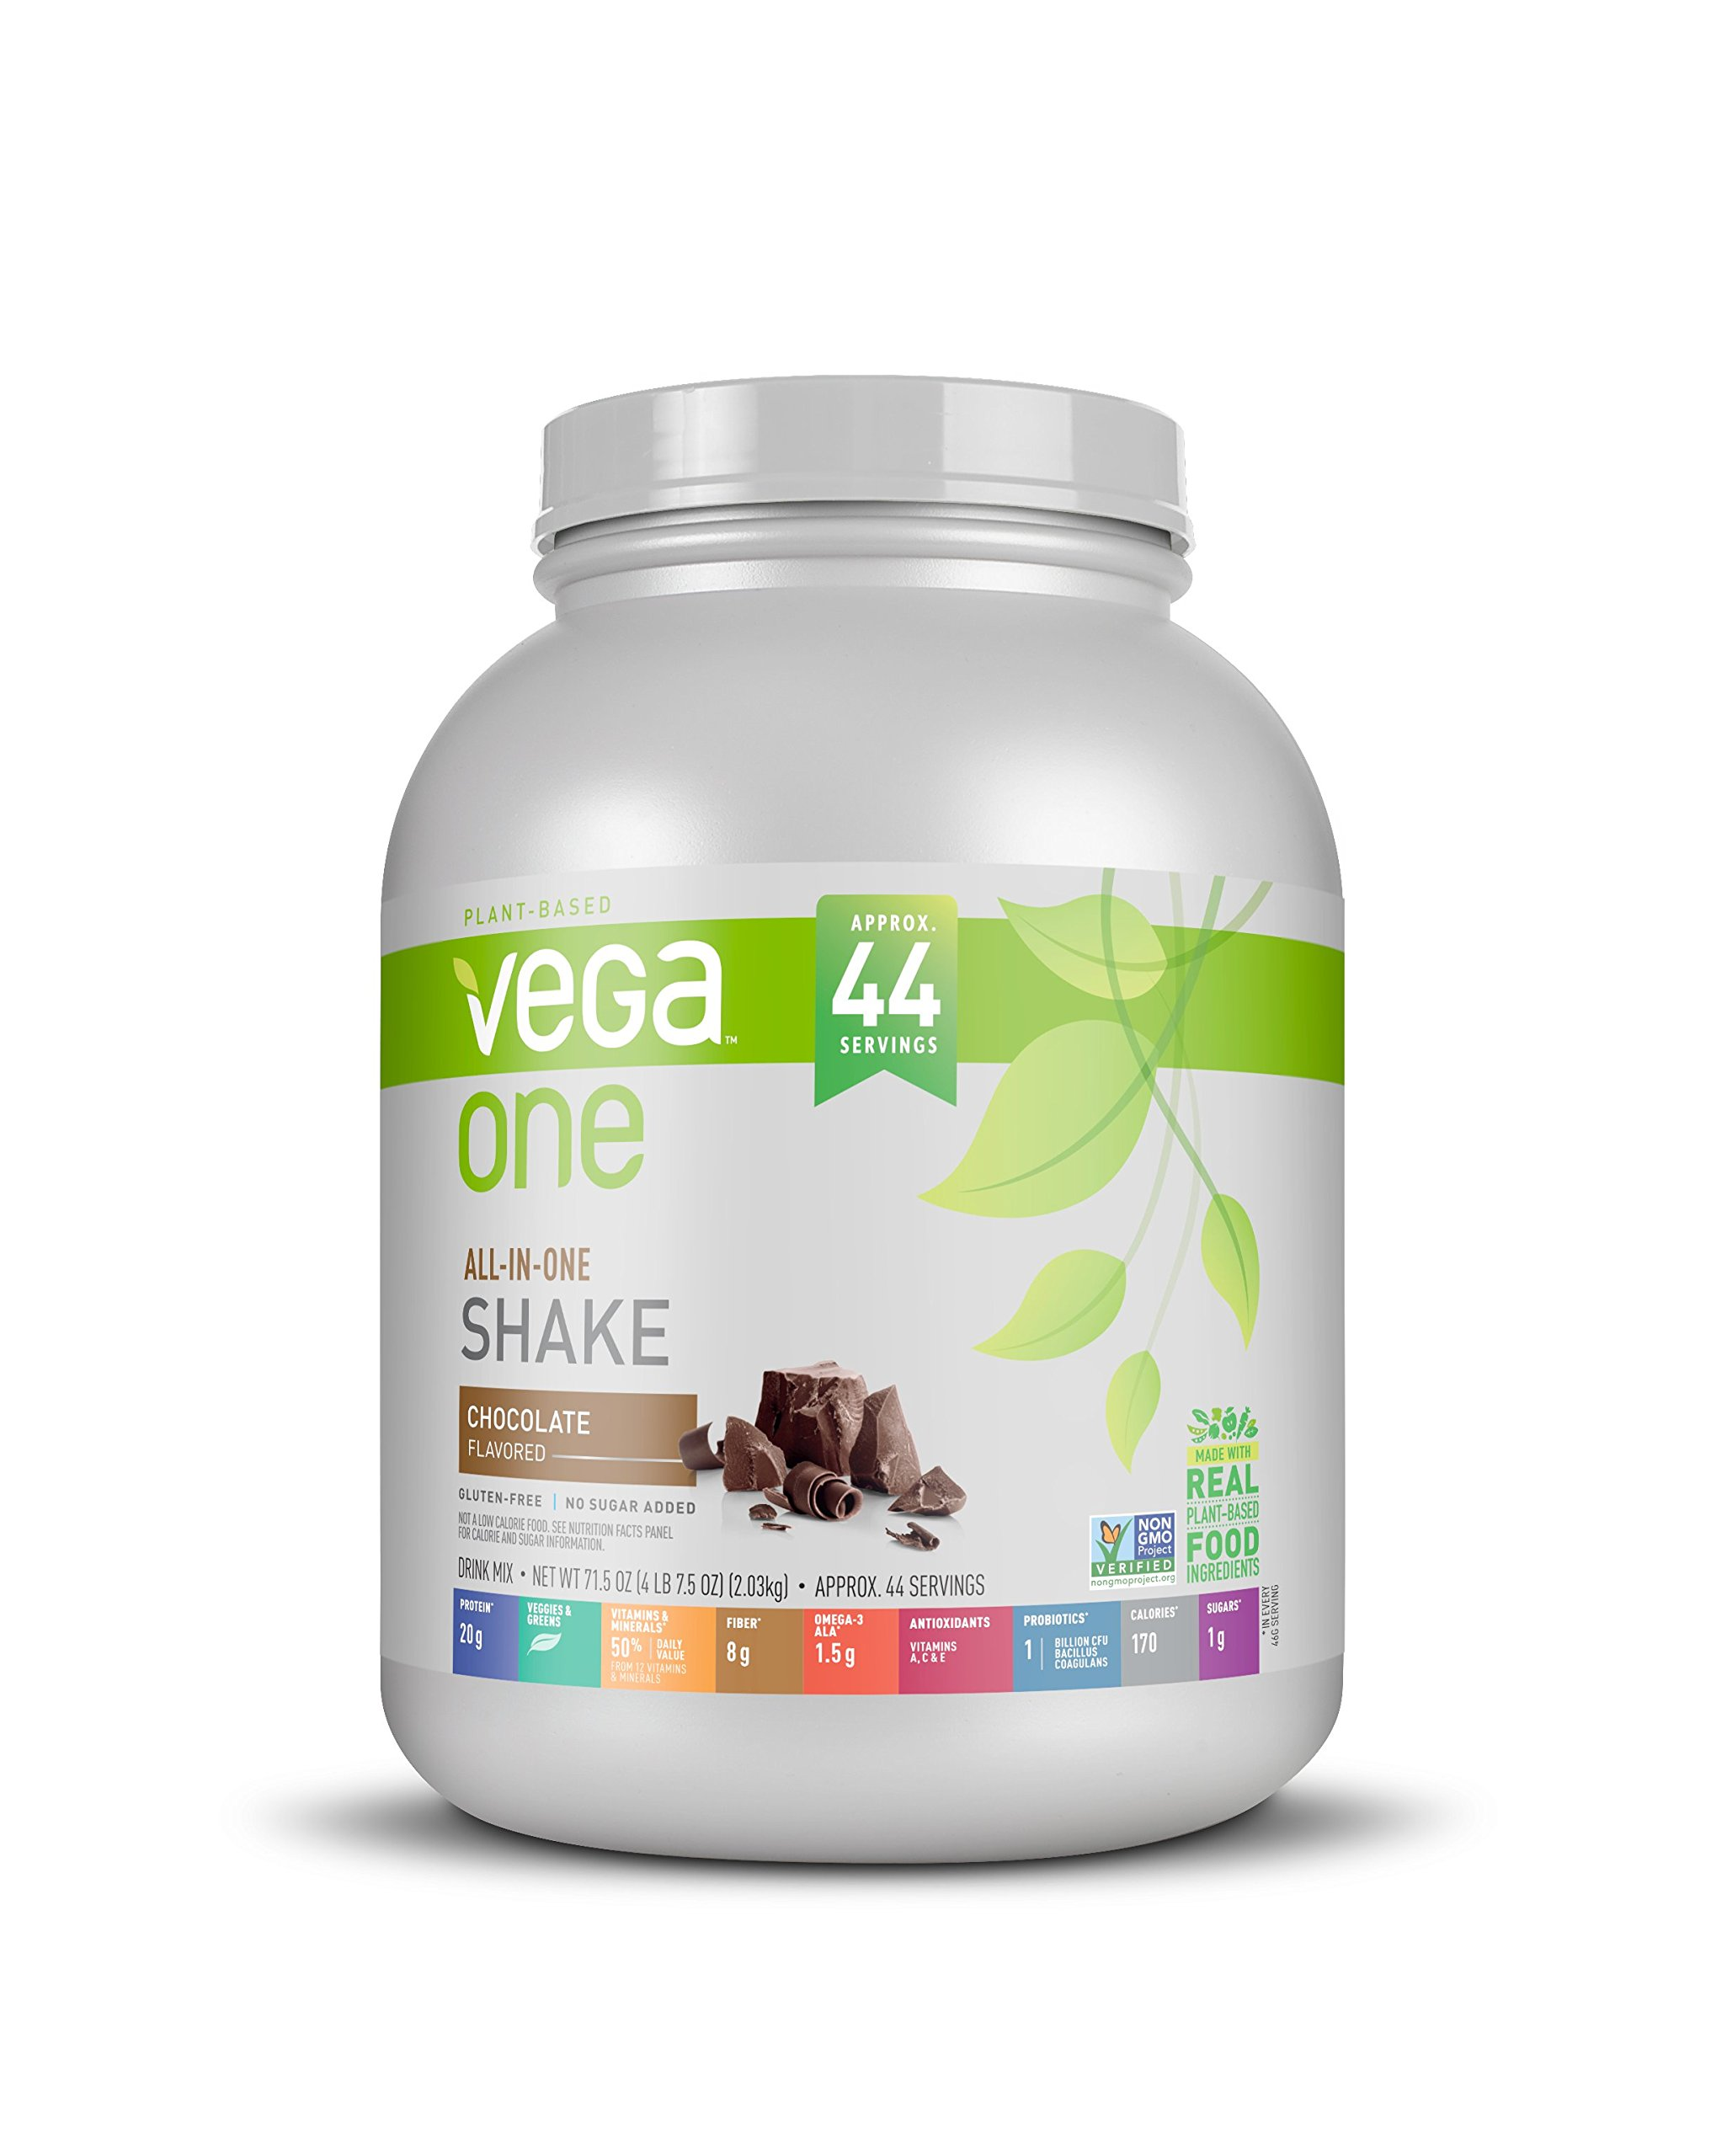 Vega All-in-One Nutritional Shake Chocolate, XL, (4.47 lbs, 44 Servings) - Plant Based Vegan Protein Powder, Non Dairy, Gluten Free, Non GMO